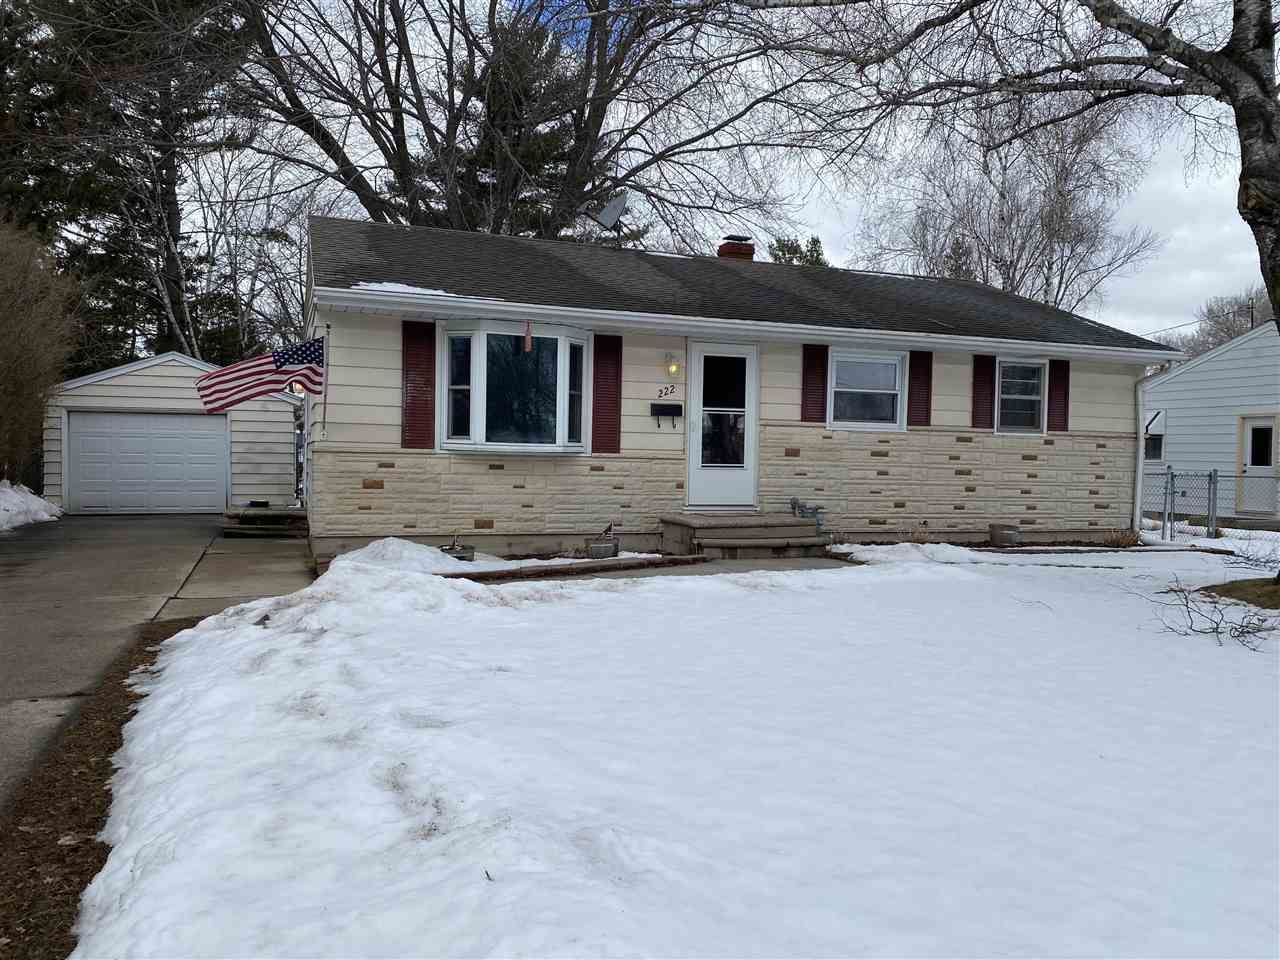 222 S PLATTEN Street, Green Bay, WI 54303 - MLS#: 50236027